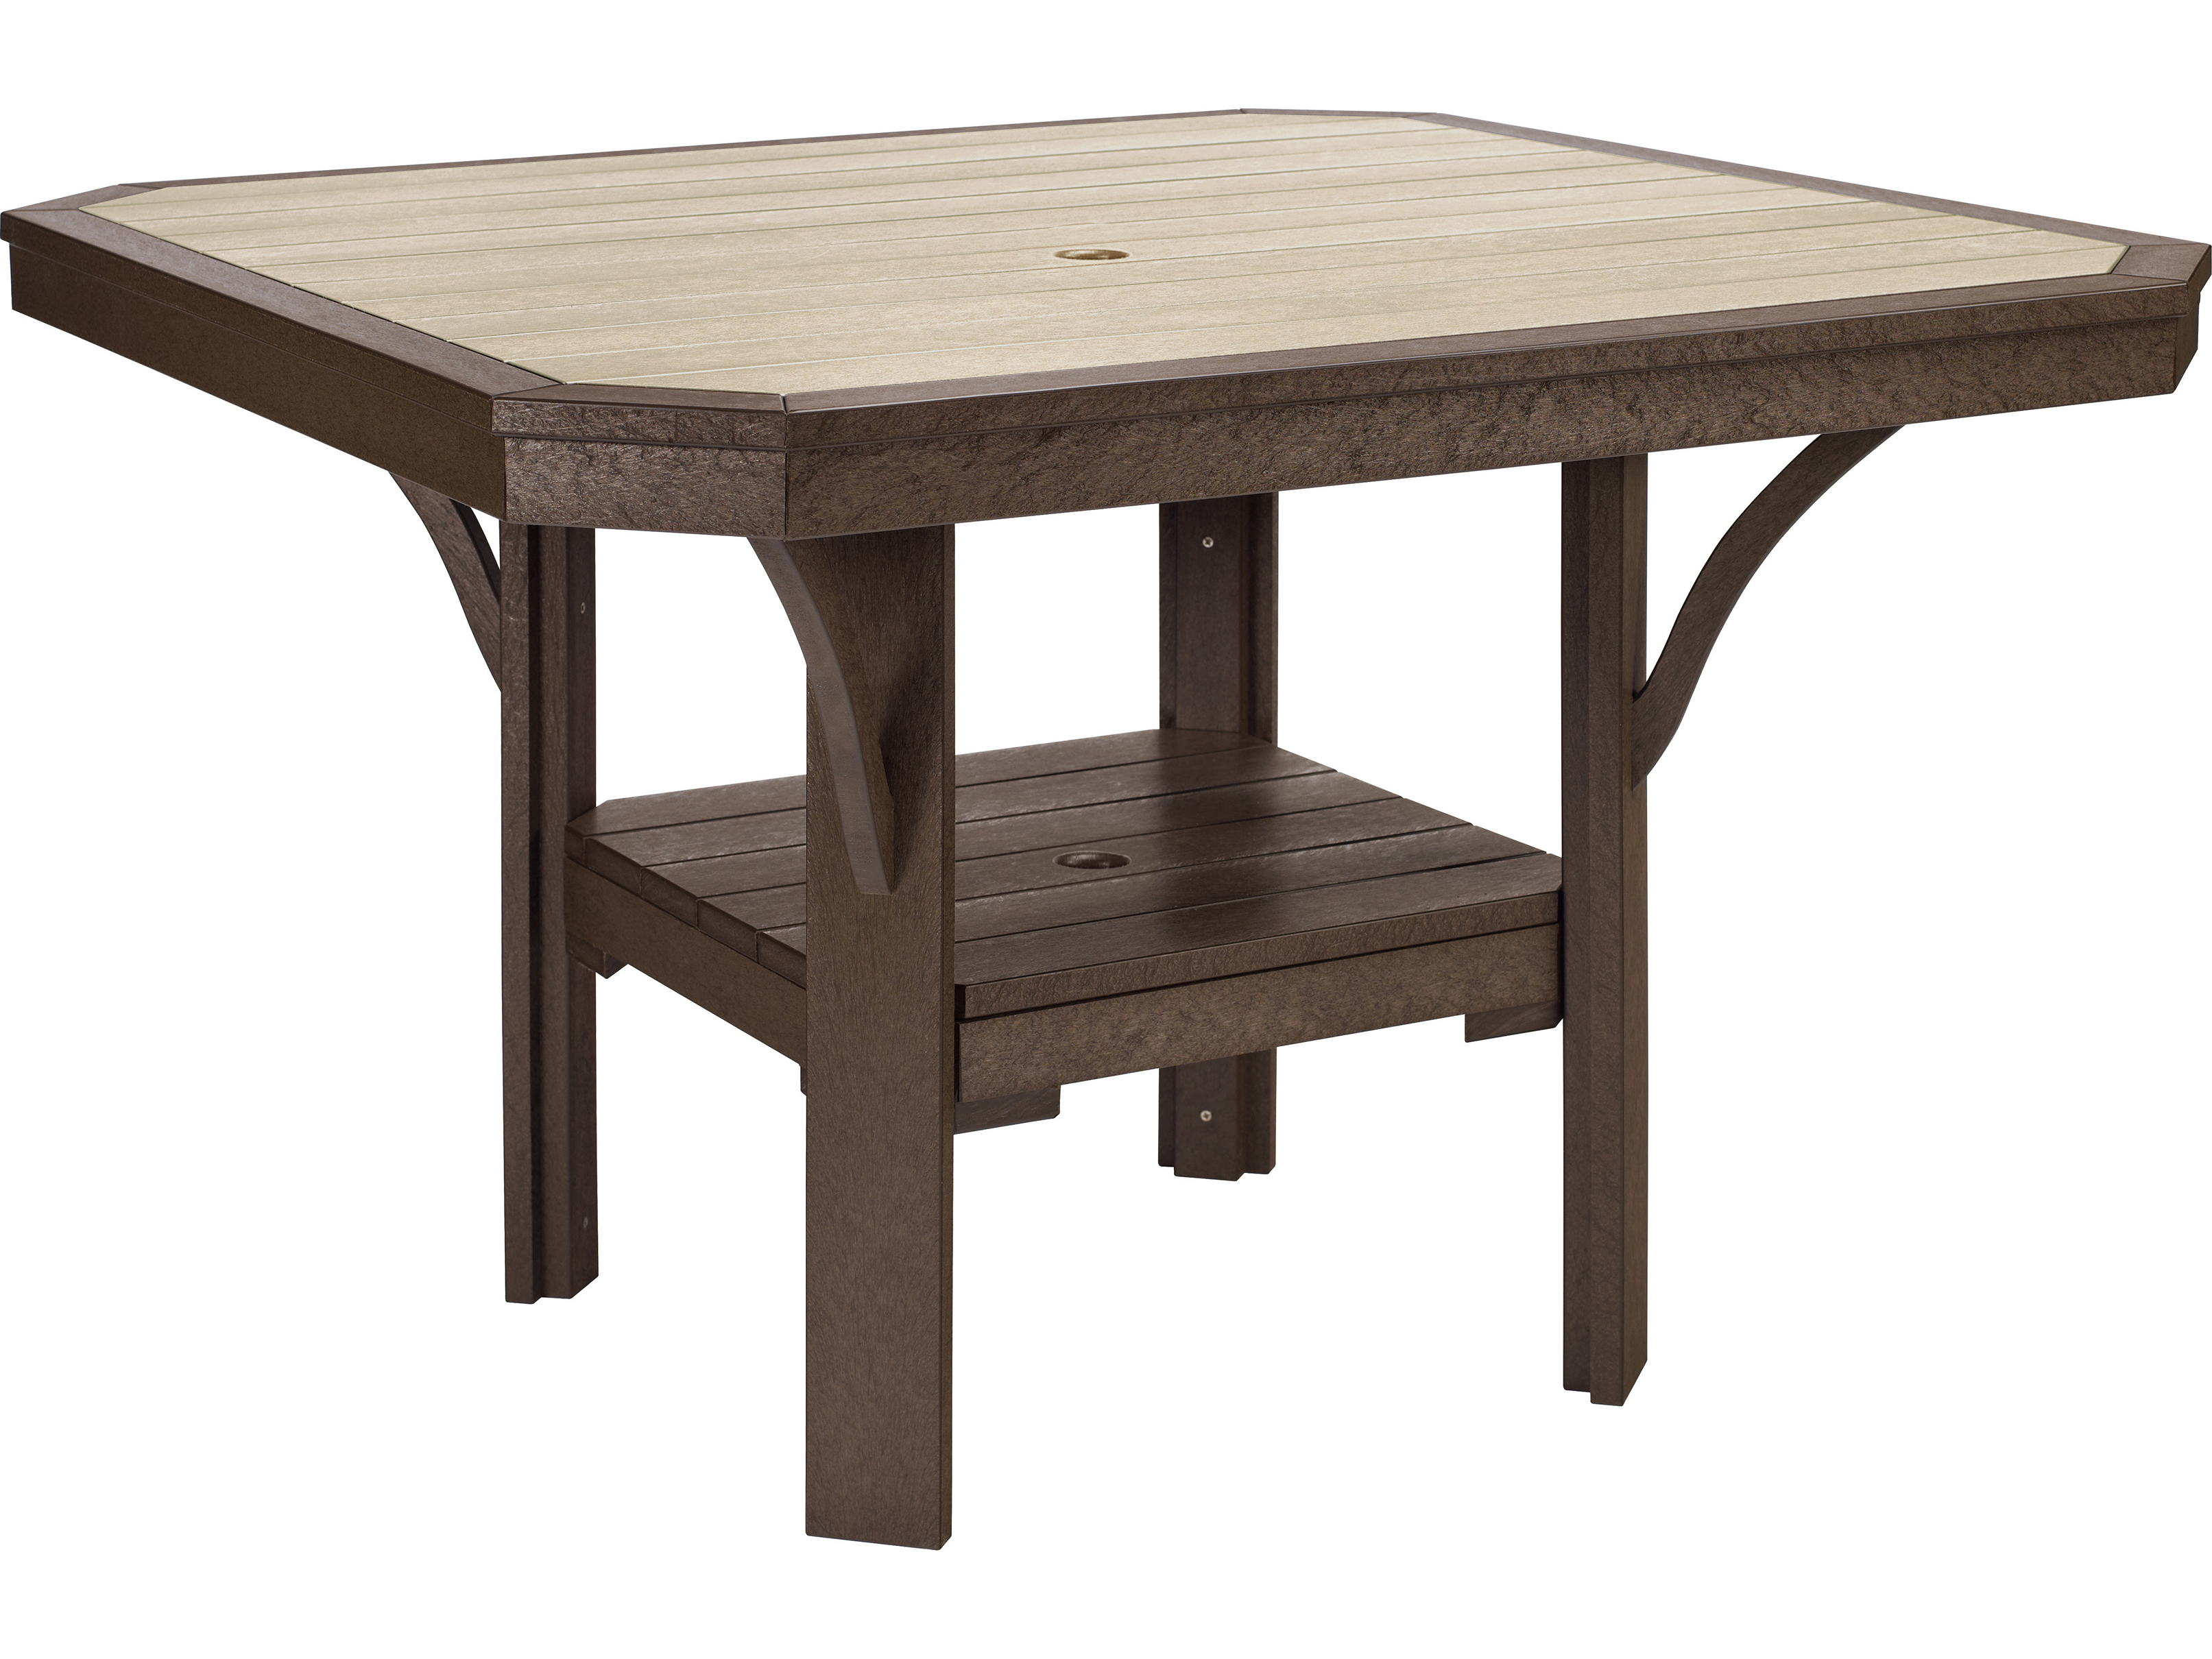 c r plastic st tropez 45 square dining table t35